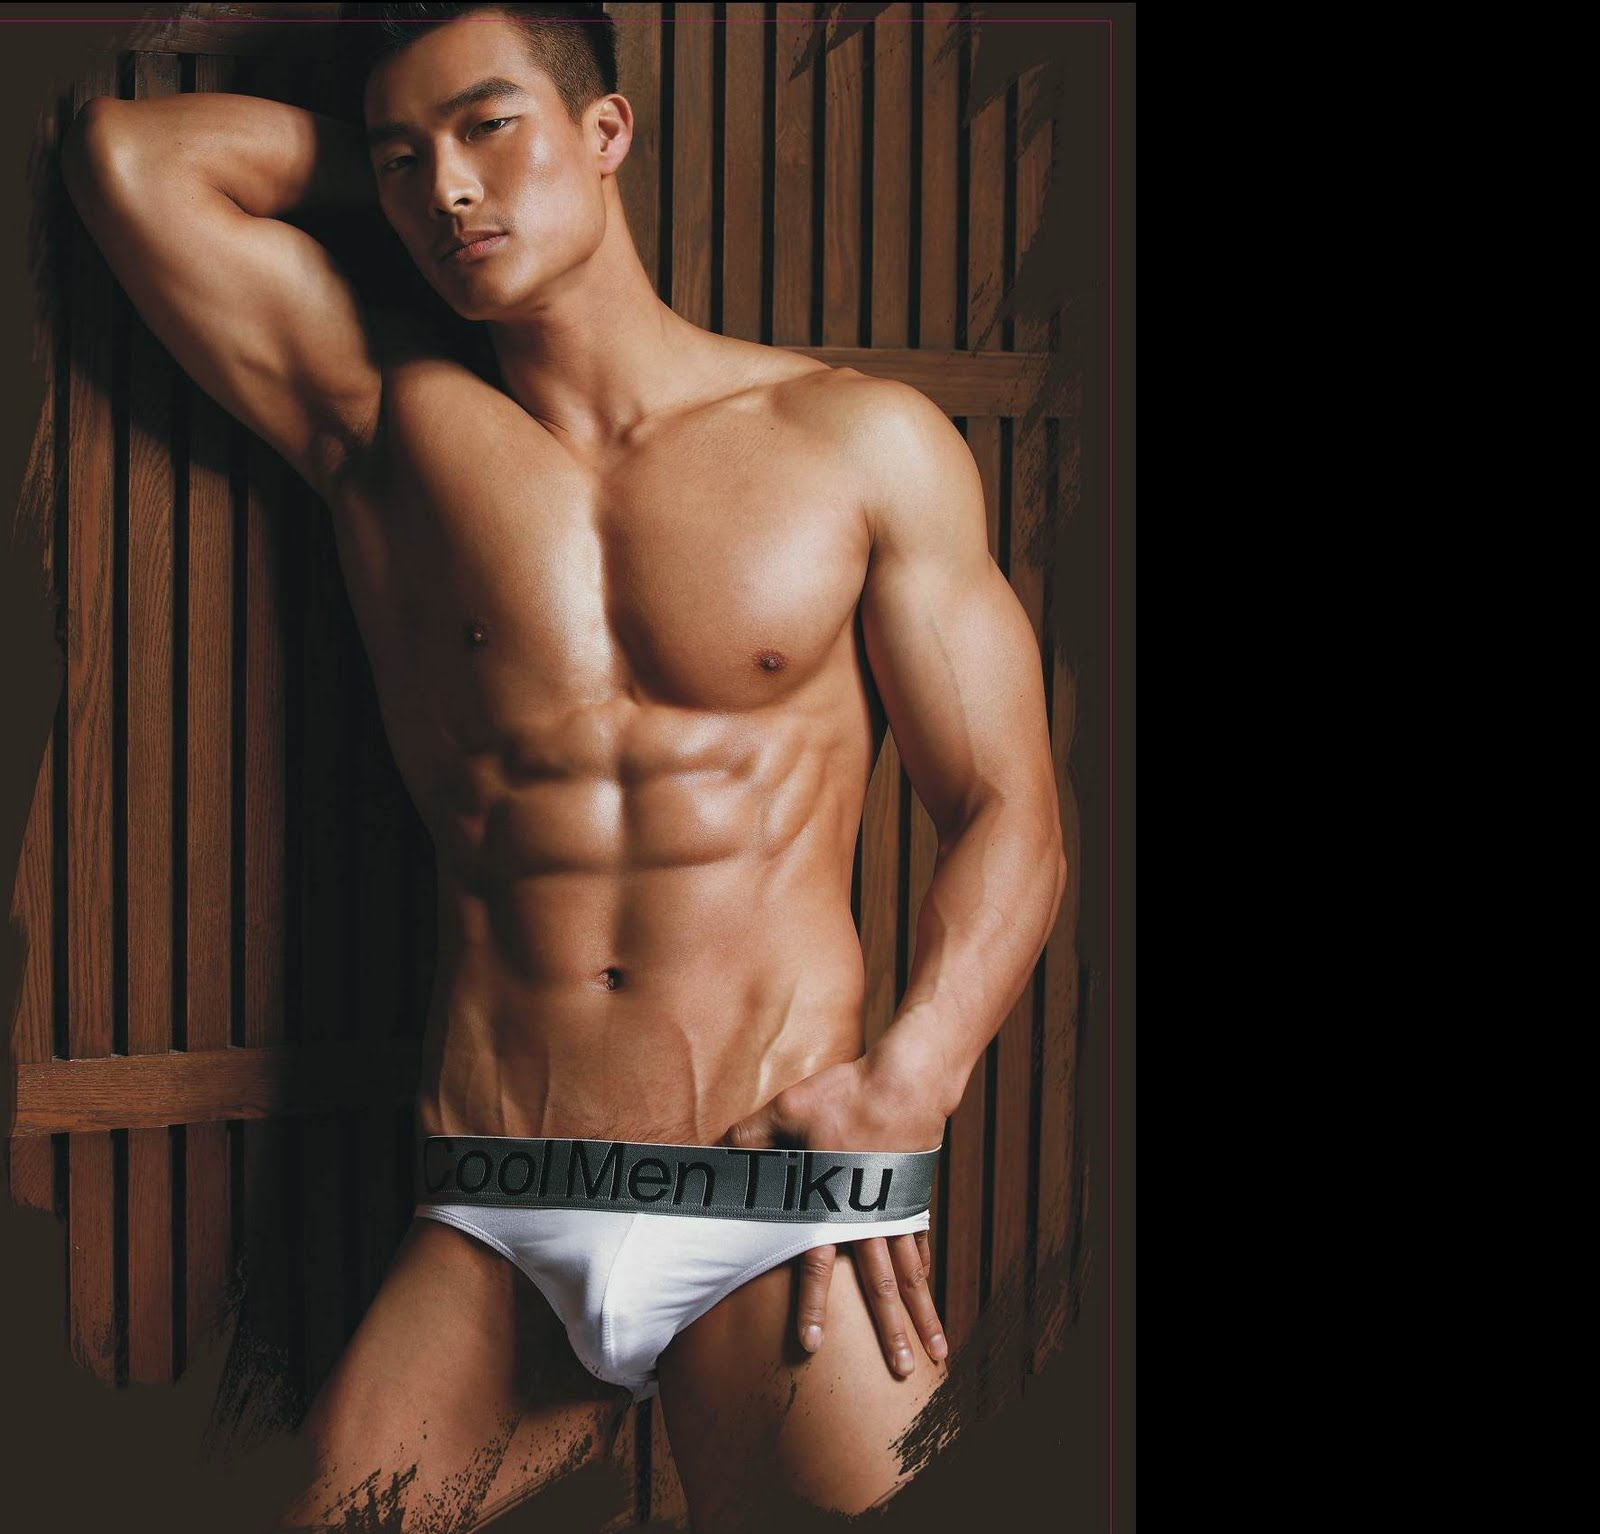 Male Sight Asian Jin Xiankui For Tiku Underwear Campaign